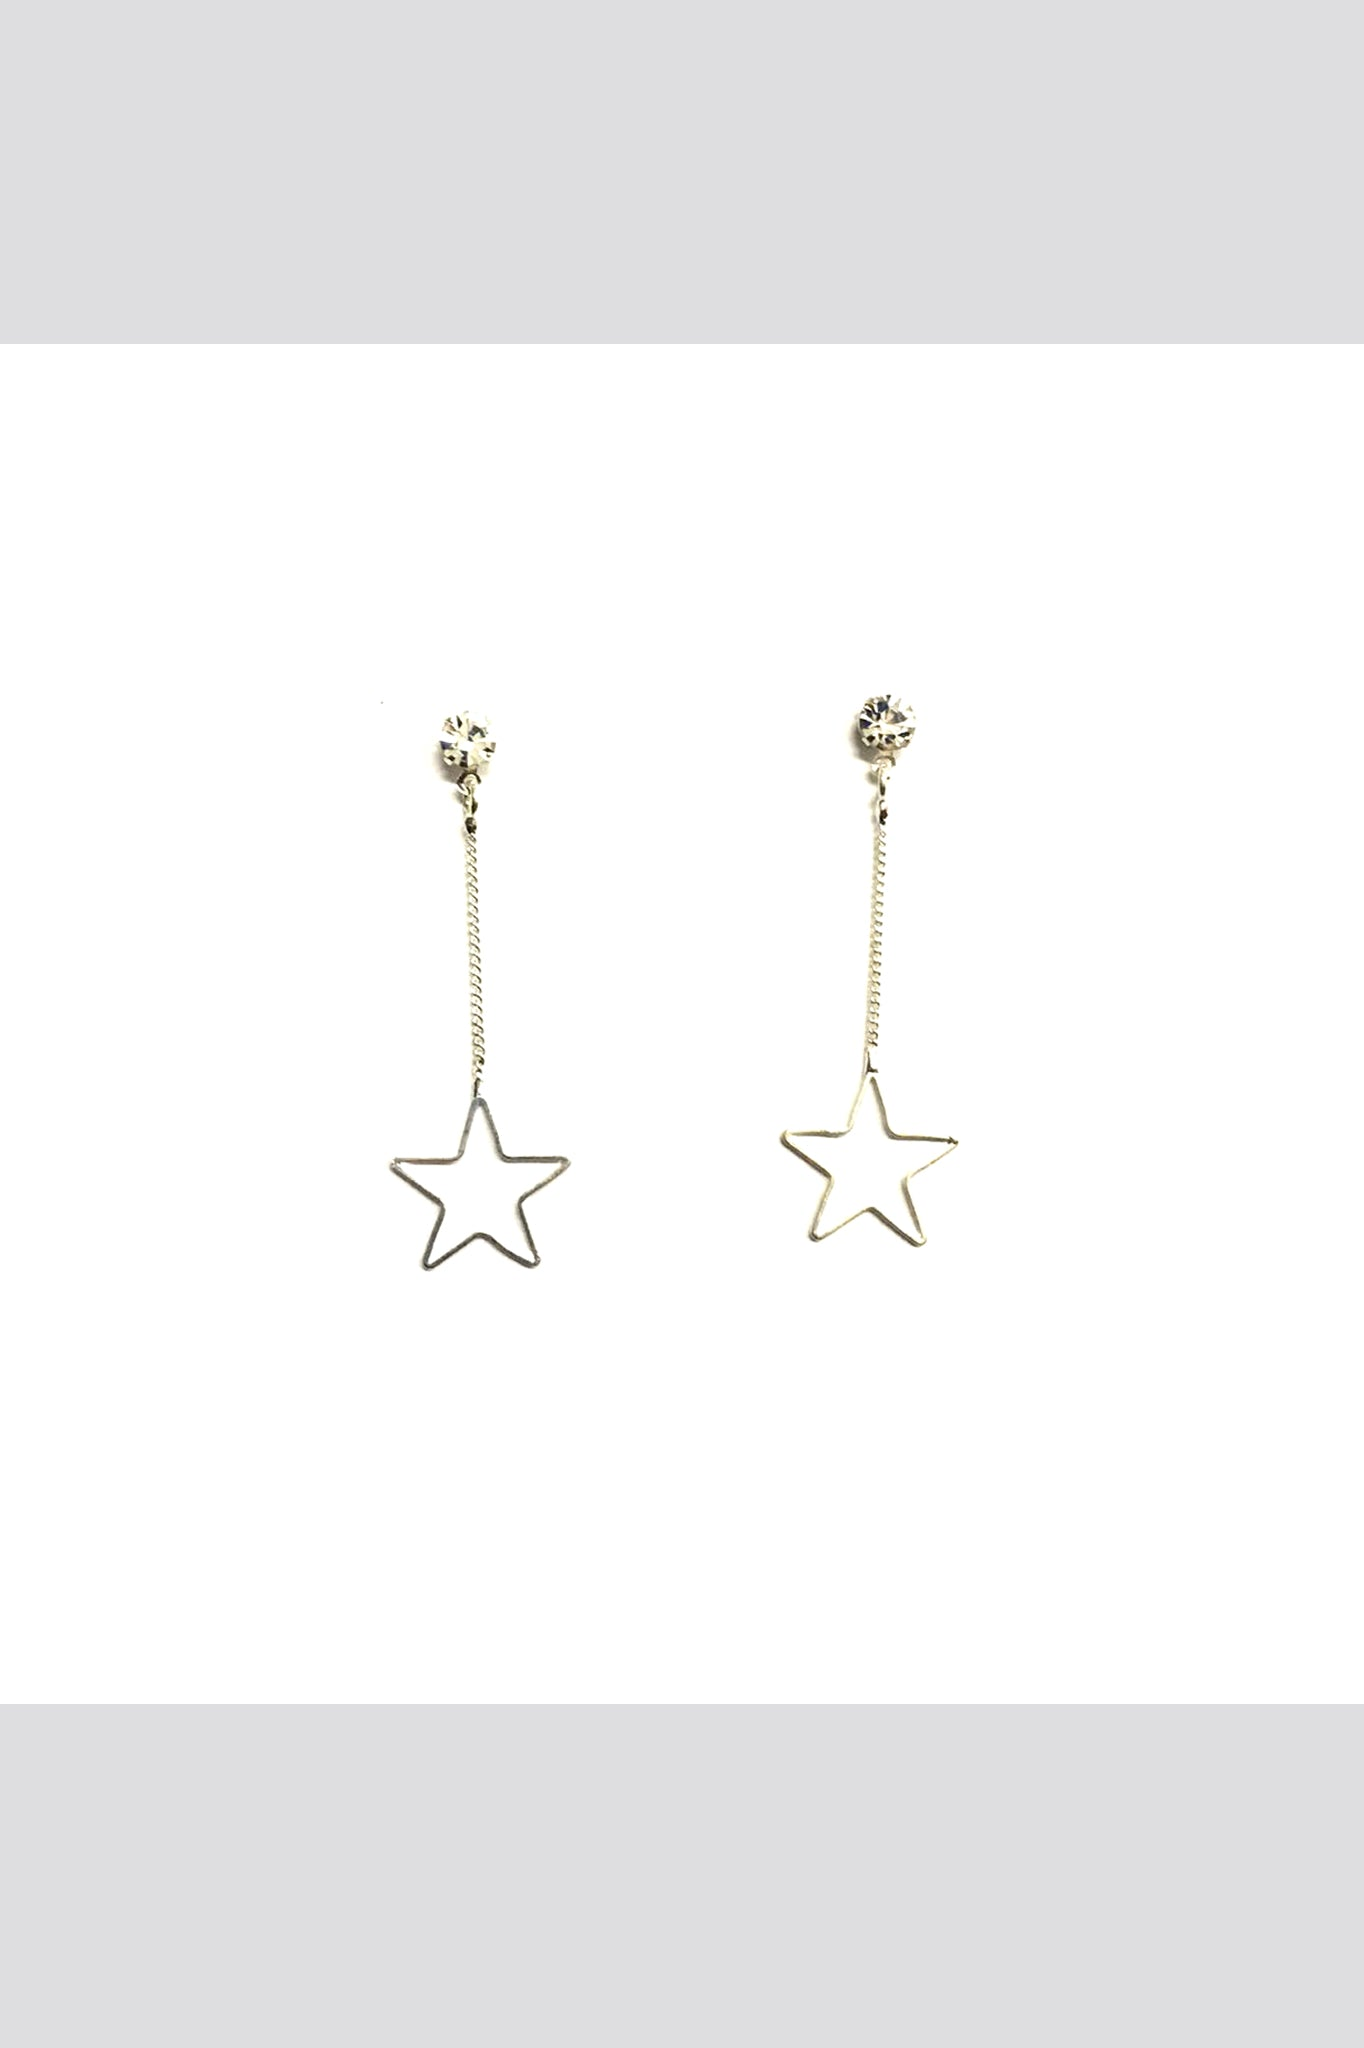 Earring-Design-18